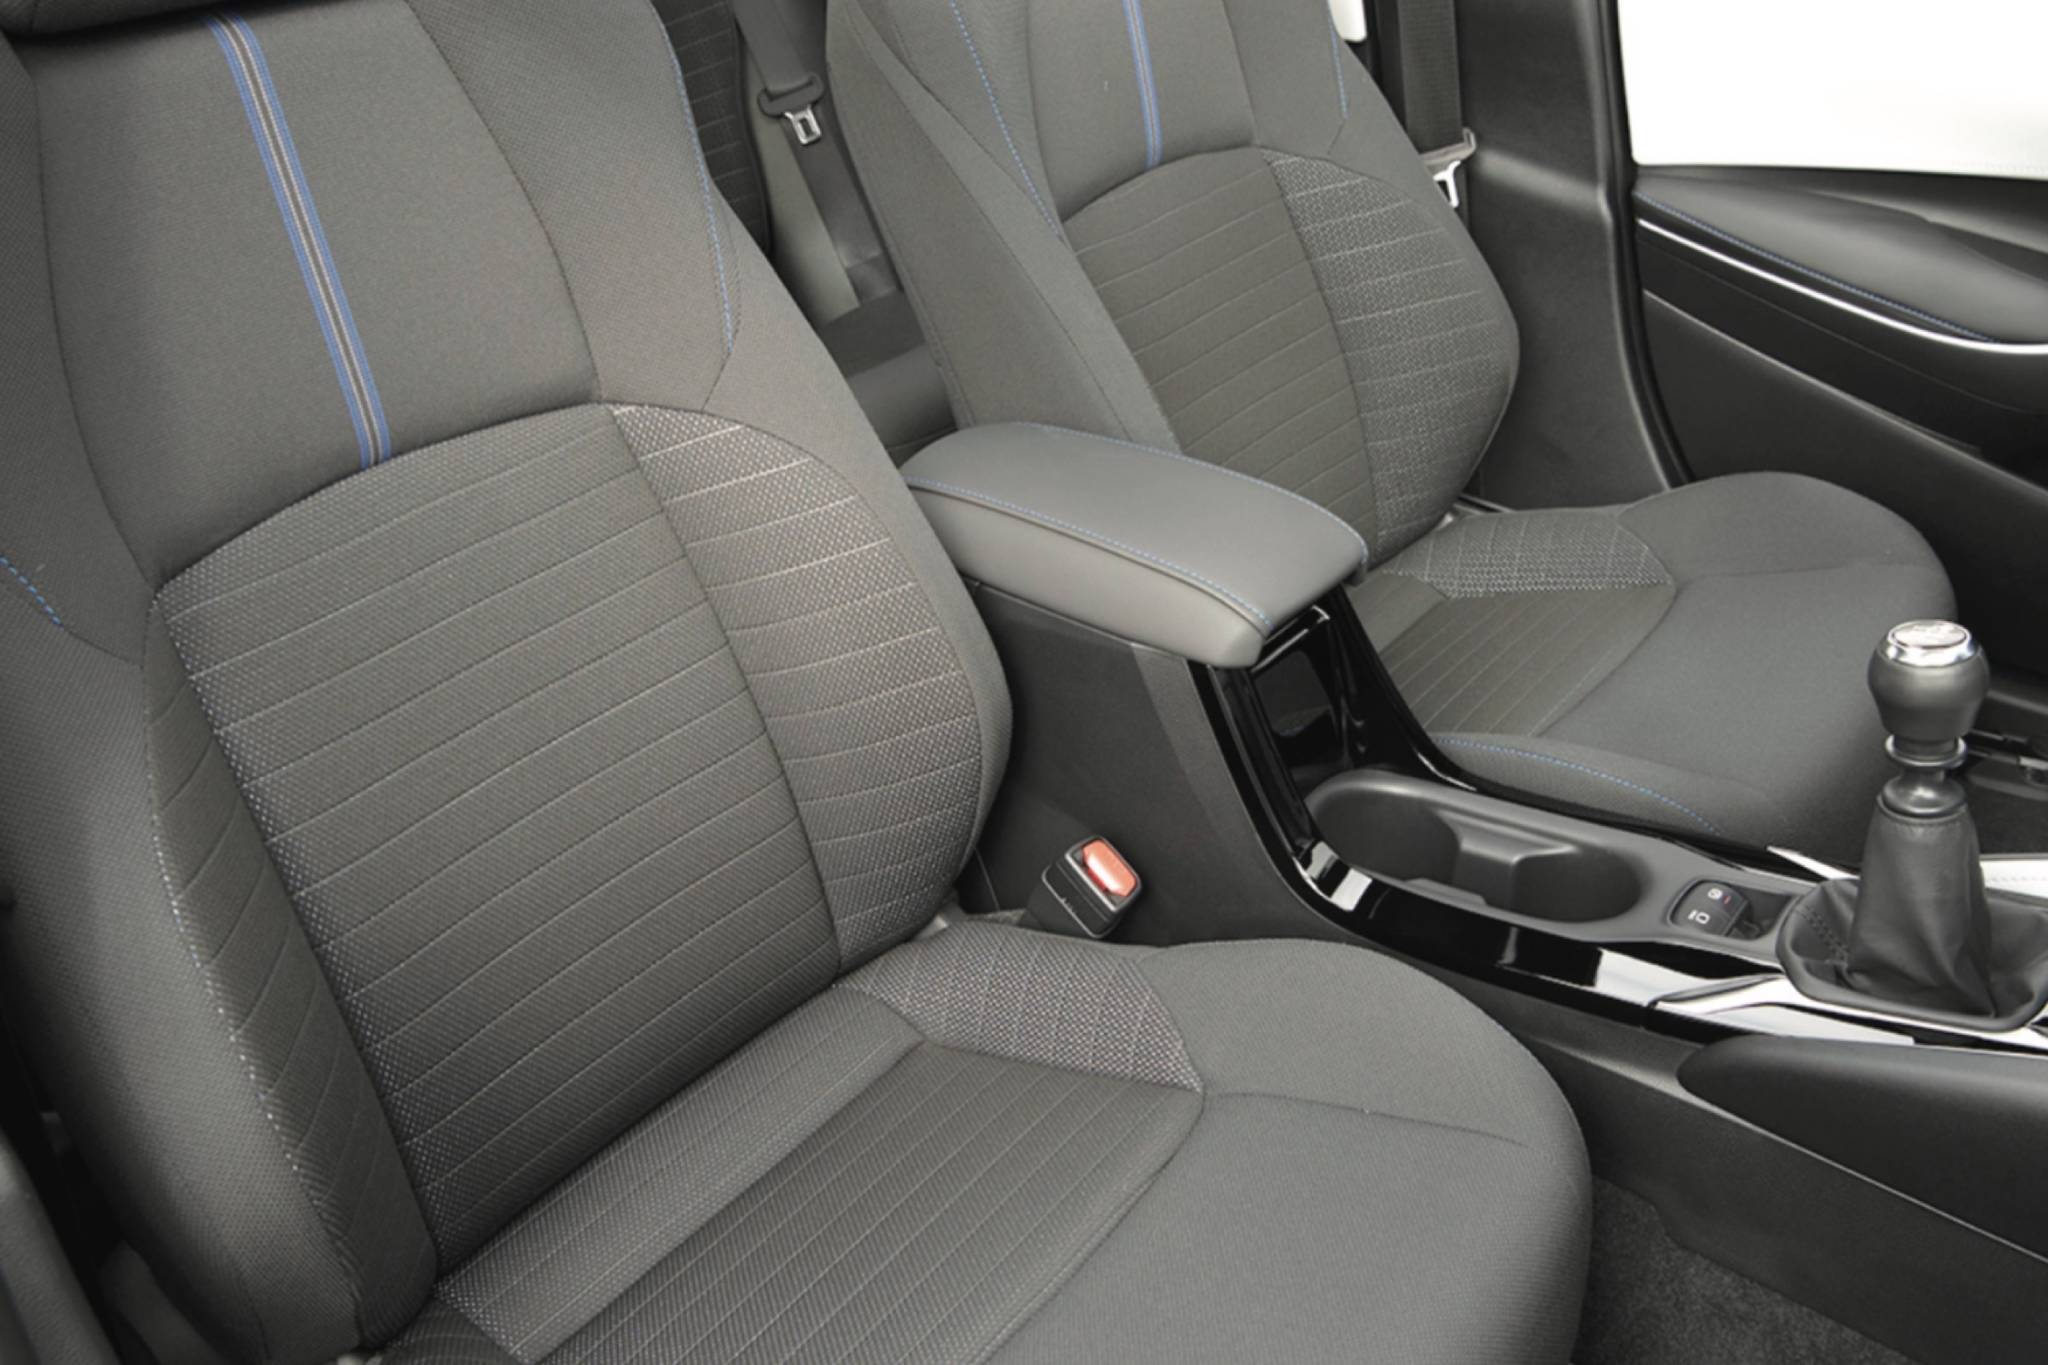 The SE can be ordered with a manual transmission and is the sporty member of the family with more supportive seats. Photo: Toyota